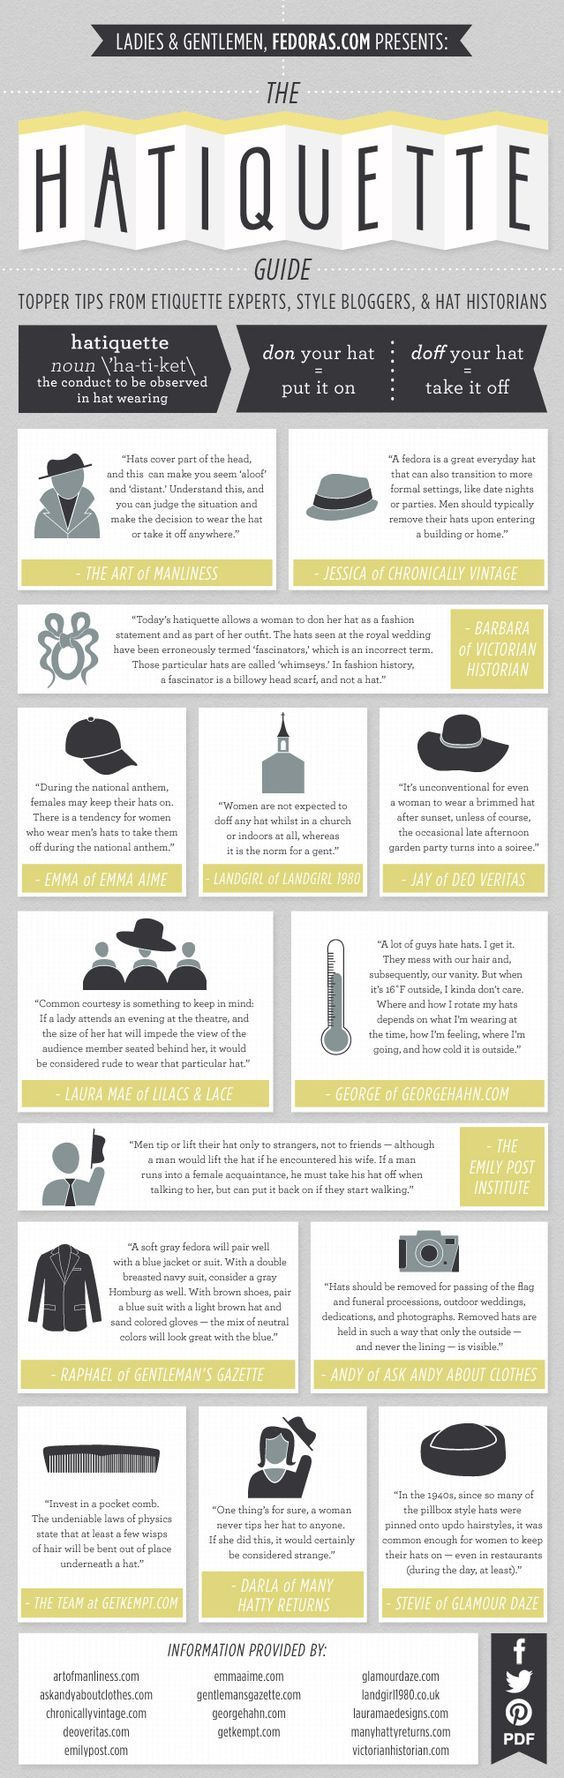 A hat etiquette guide. Let's bring back the fashionable hat, ladies! (However, I take umbrage with one rule: ALWAYS remove your hat during the national anthem, no mater what type it is. Your gender does not excuse you from showing proper respect for our flag and customs.)